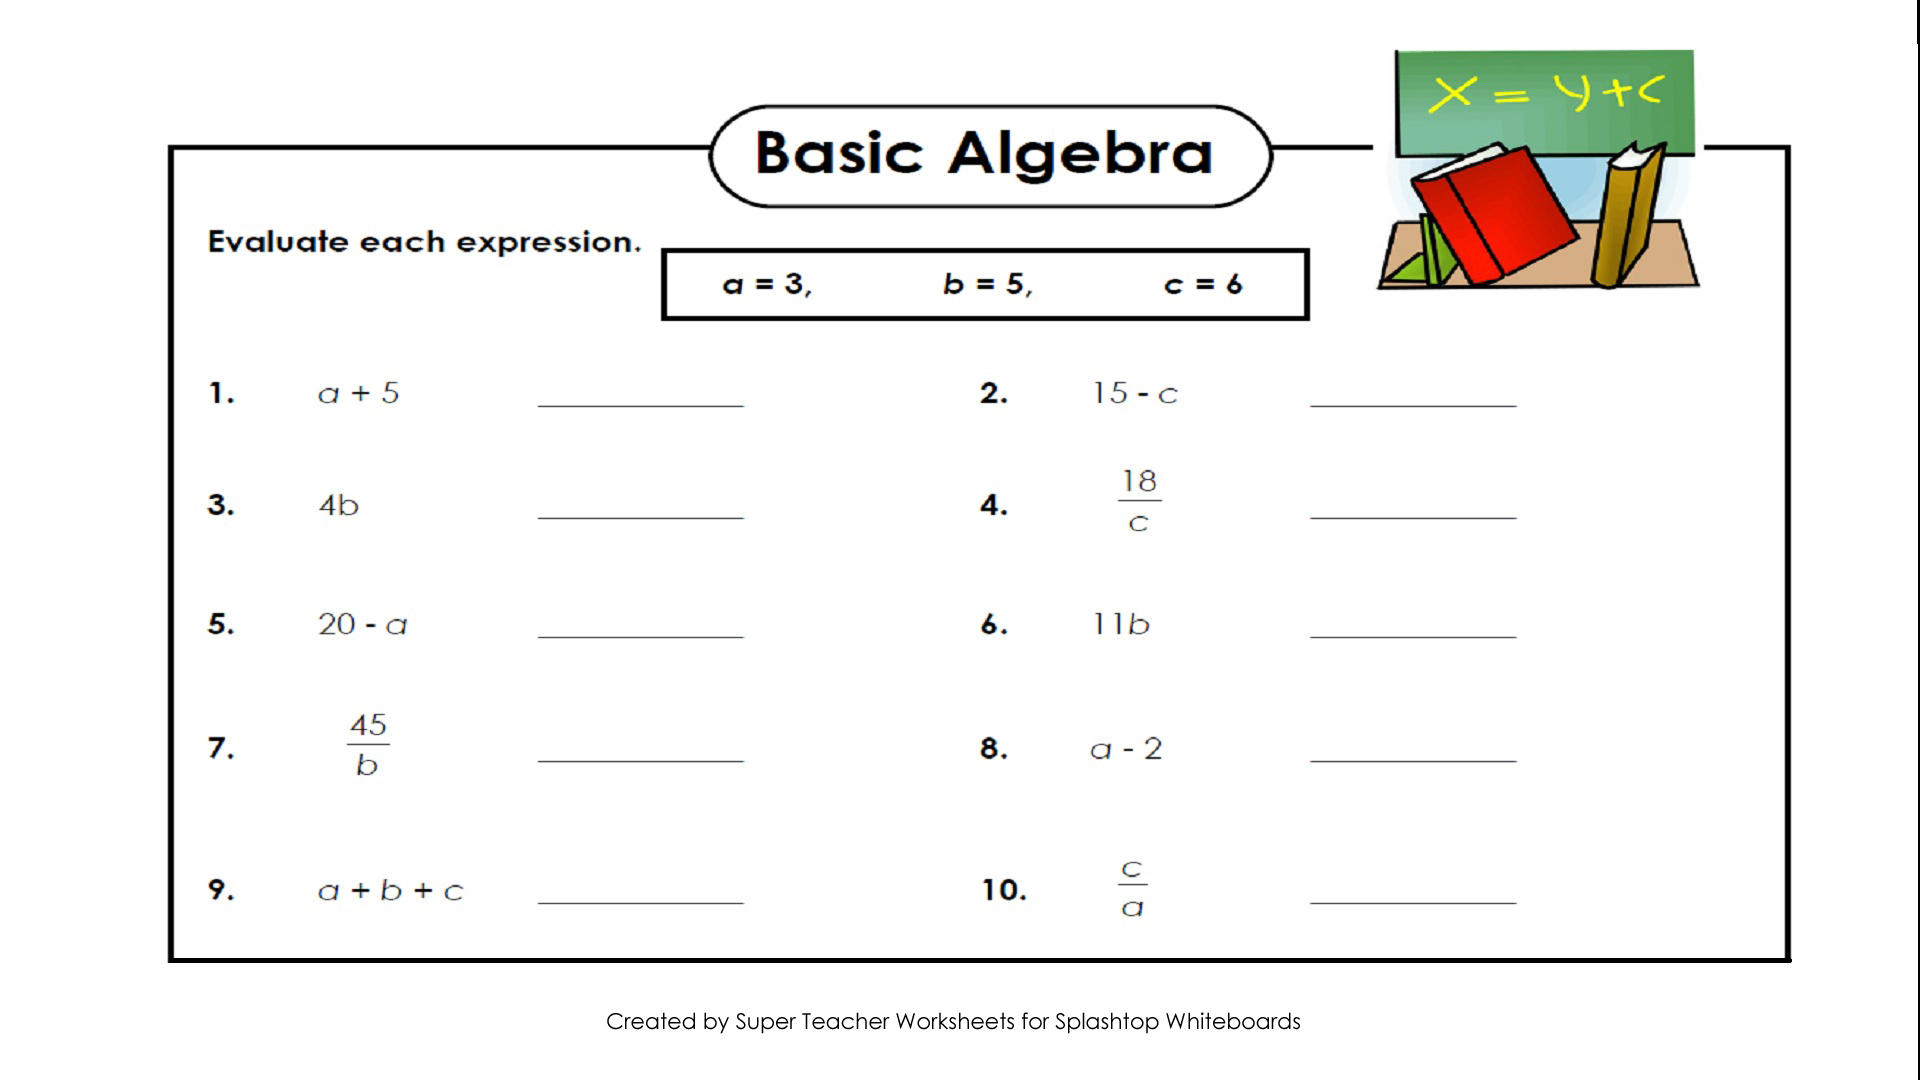 Worksheet Elementary Algebra Worksheets basic algebra solve for x worksheets gas at stp